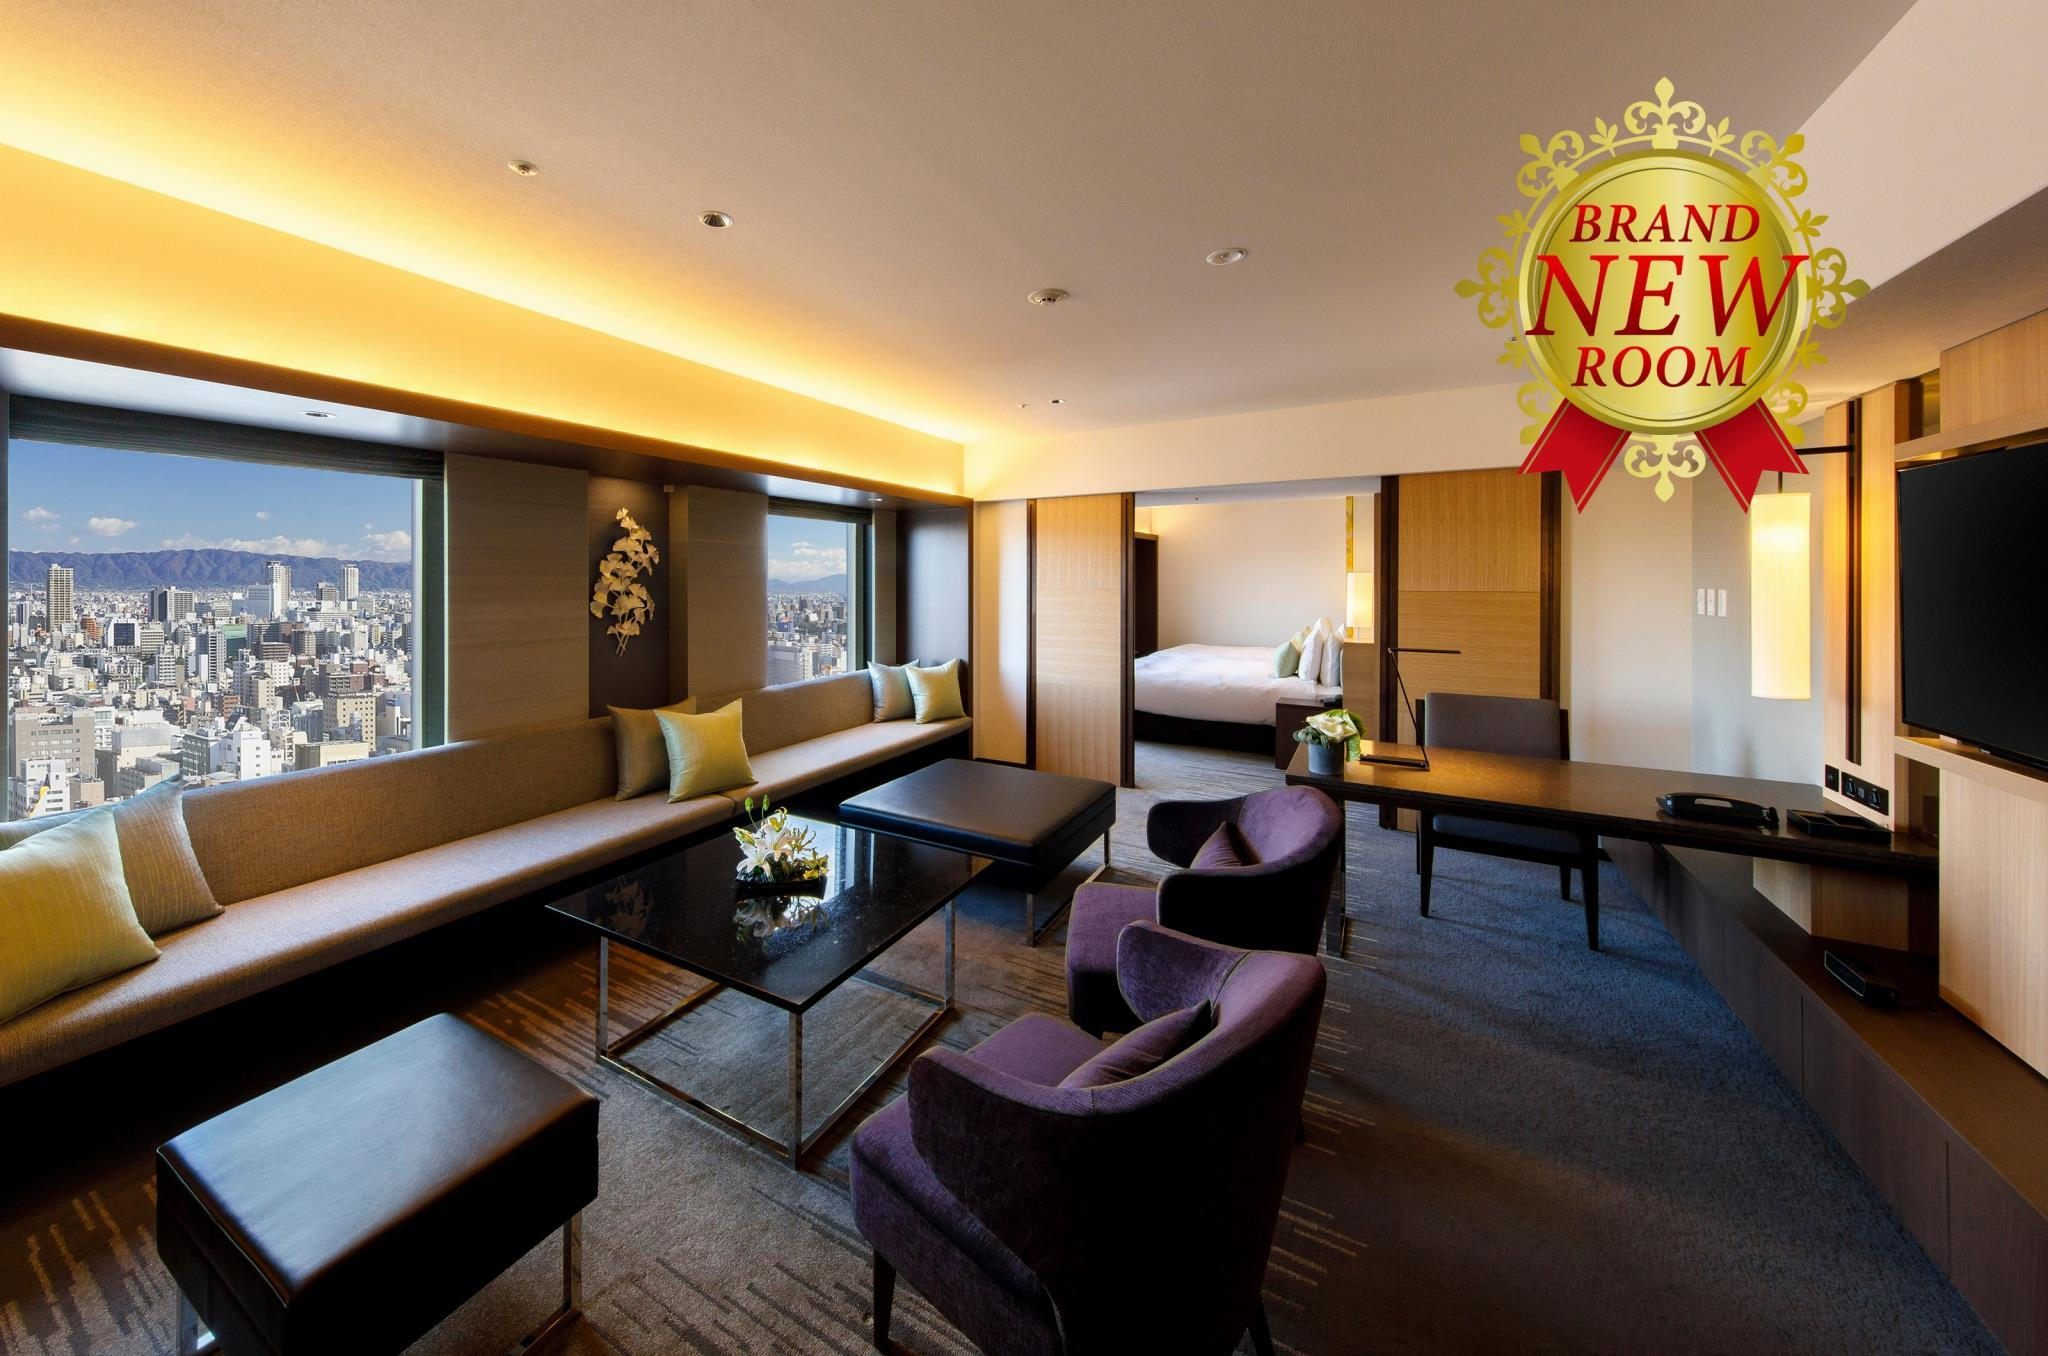 【特惠推廣】日航三人行政套房 - 禁煙 (Nikko Triple Executive Suite - Non-Smoking, Special Offer)